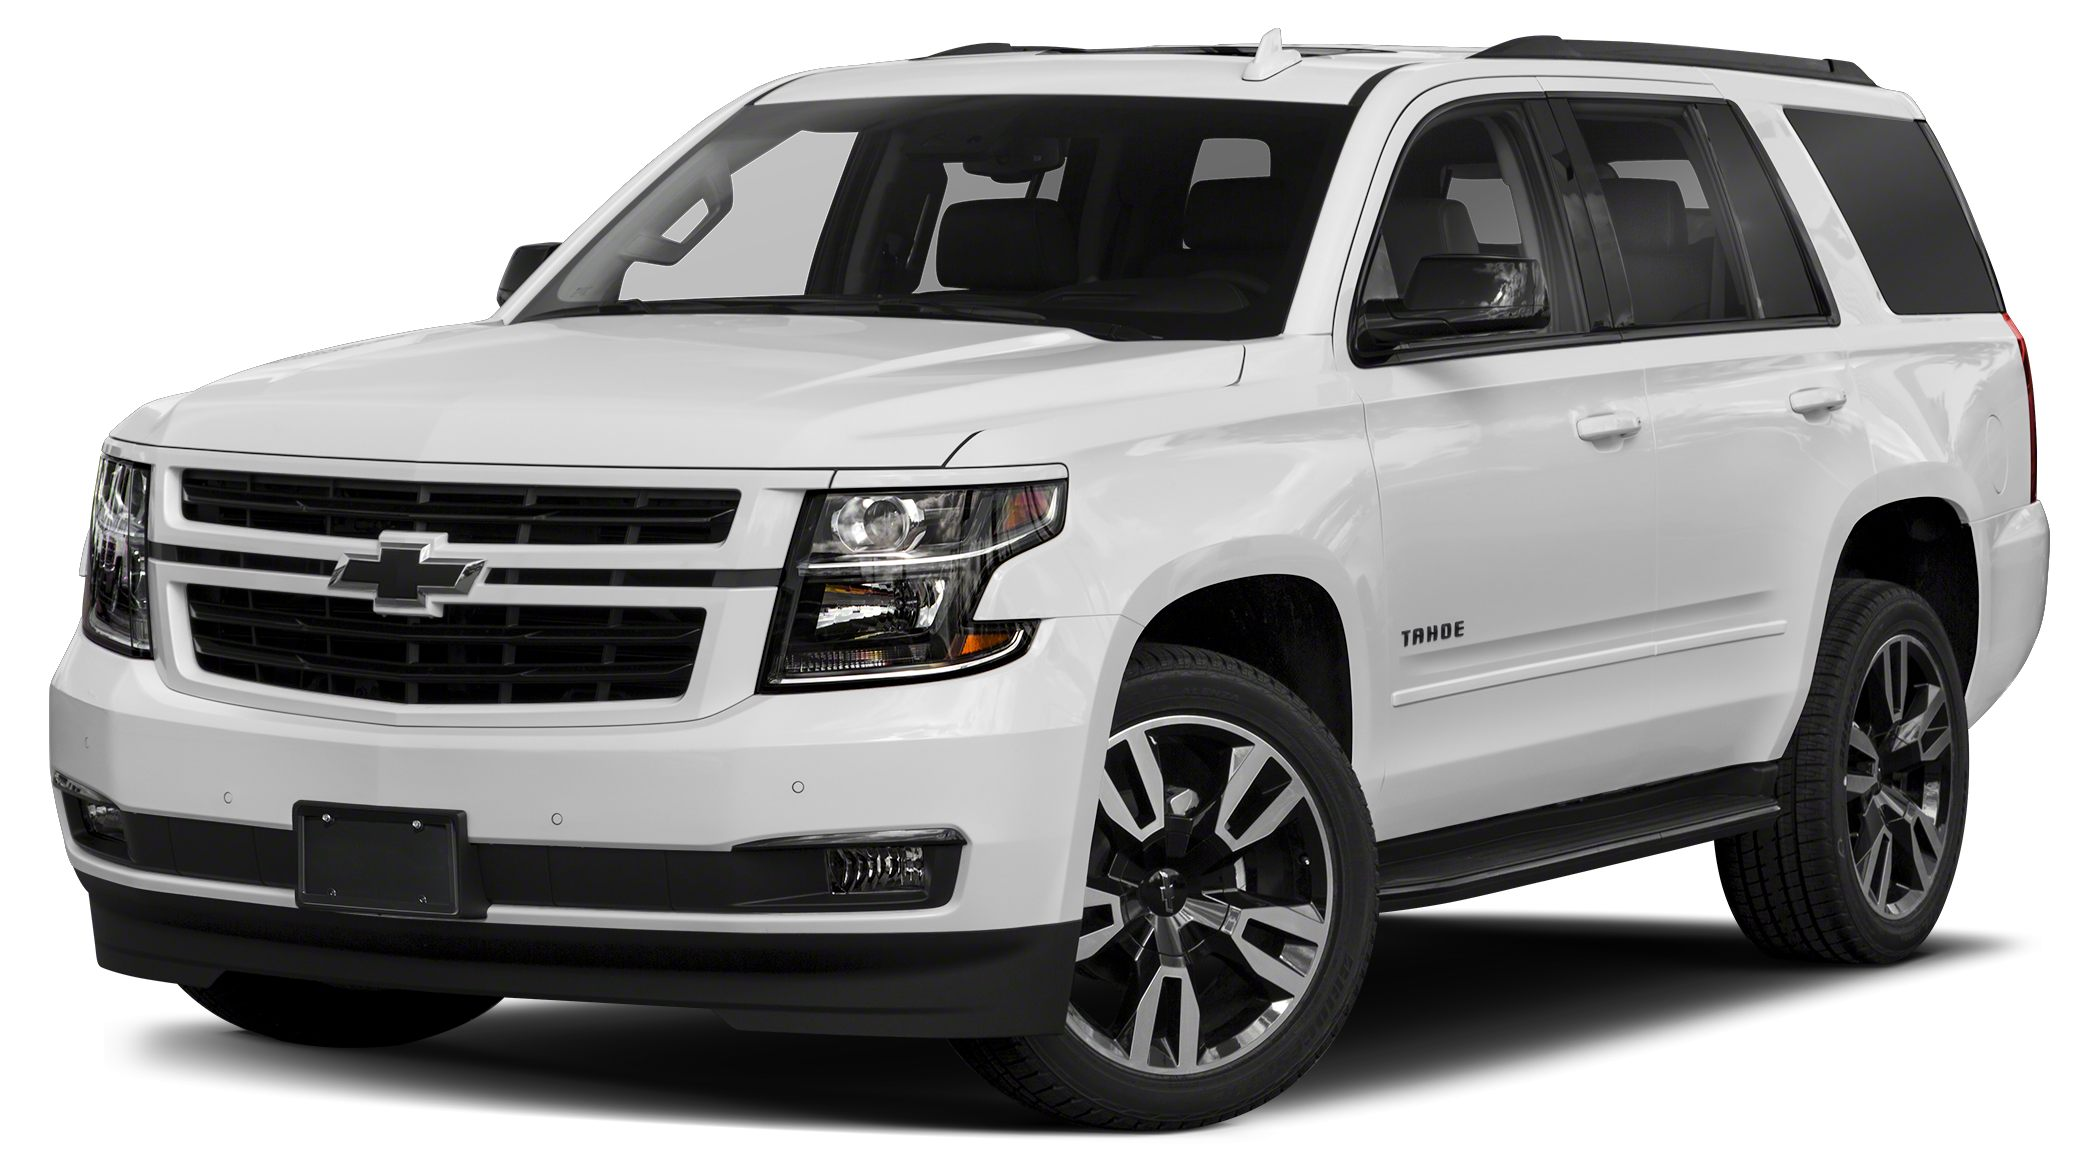 2018 Chevrolet Tahoe Premier Summit White 2018 Chevrolet Tahoe Premier RWD 10-Speed Automatic EcoT